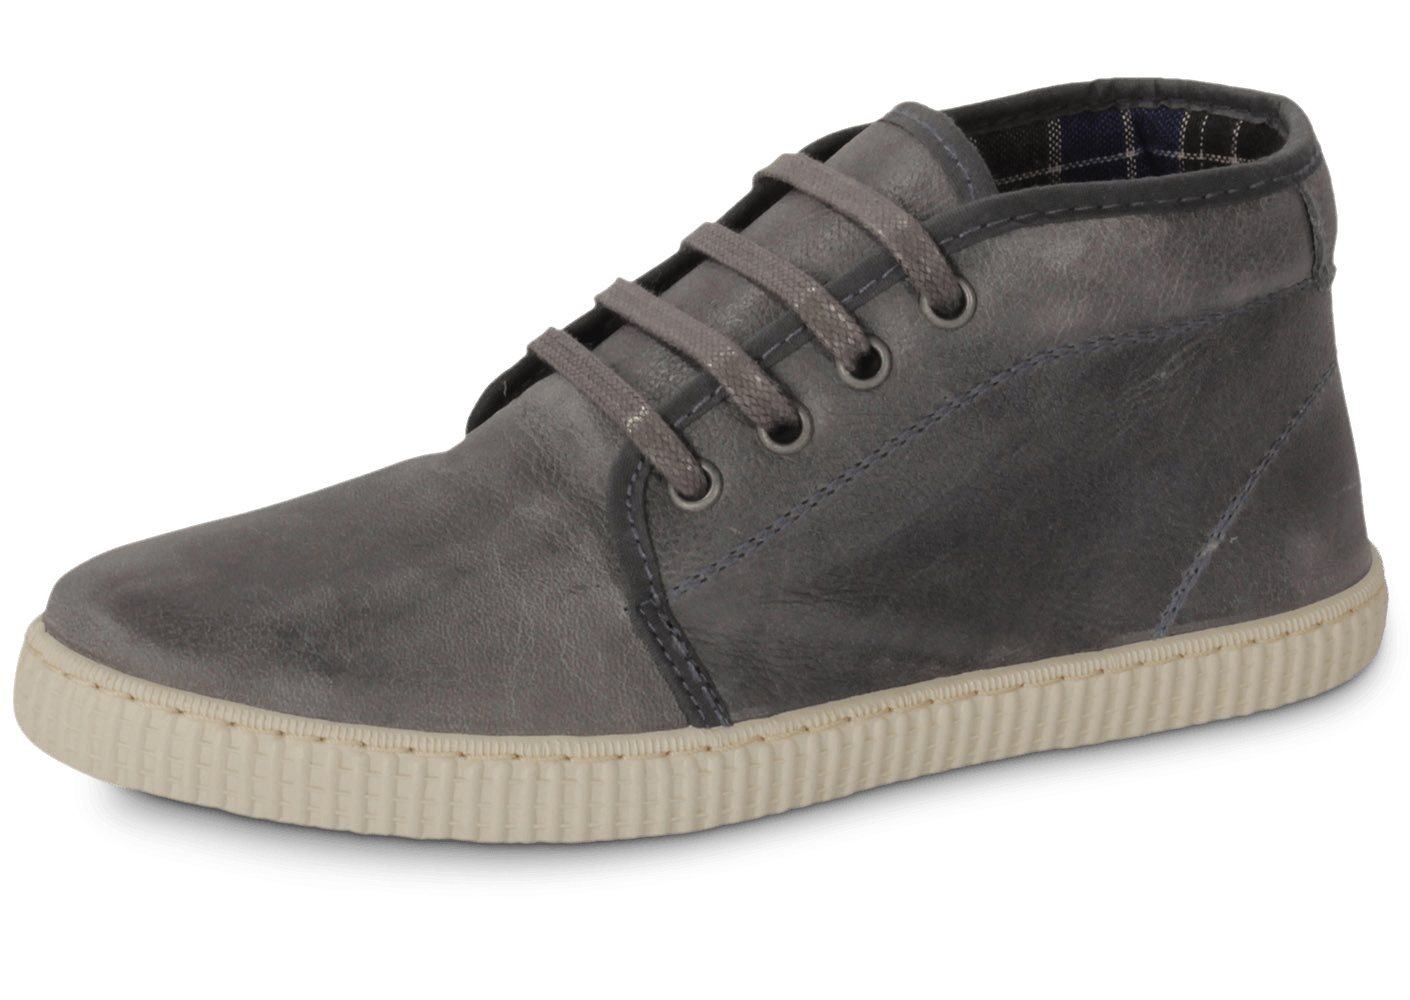 chaussure victoria grise homme chaussures victoria chukka